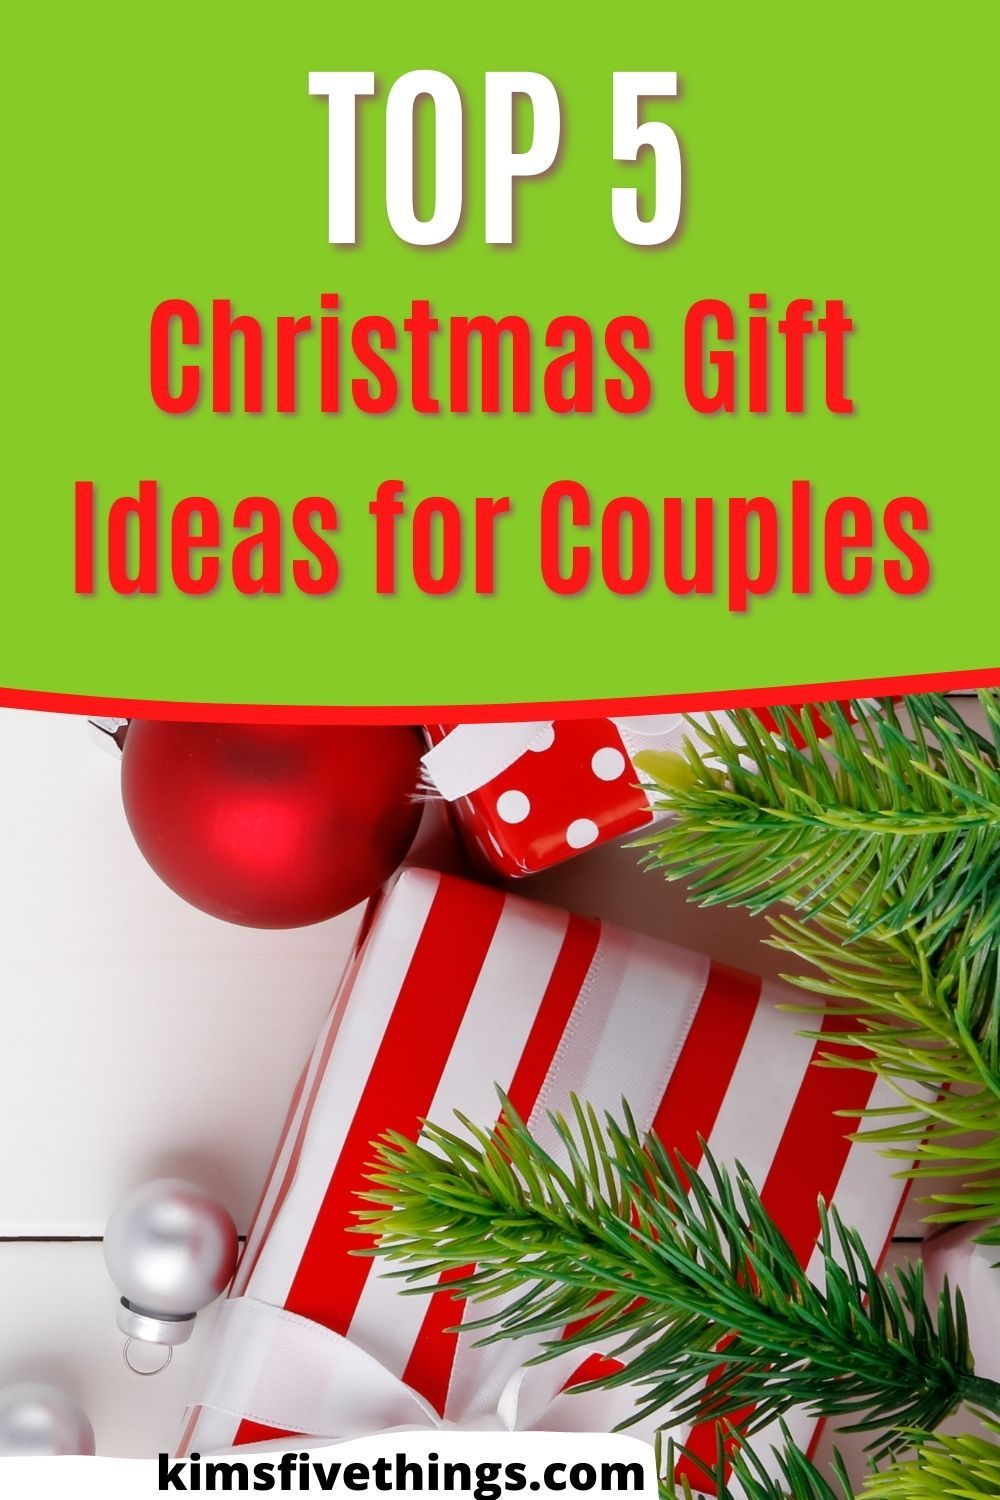 Top 5 Christmas Gifts For Couples Best His And Hers Present Ideas Kims Home Ideas In 2020 Christmas Gifts For Couples Top 5 Christmas Gifts Couple Gifts